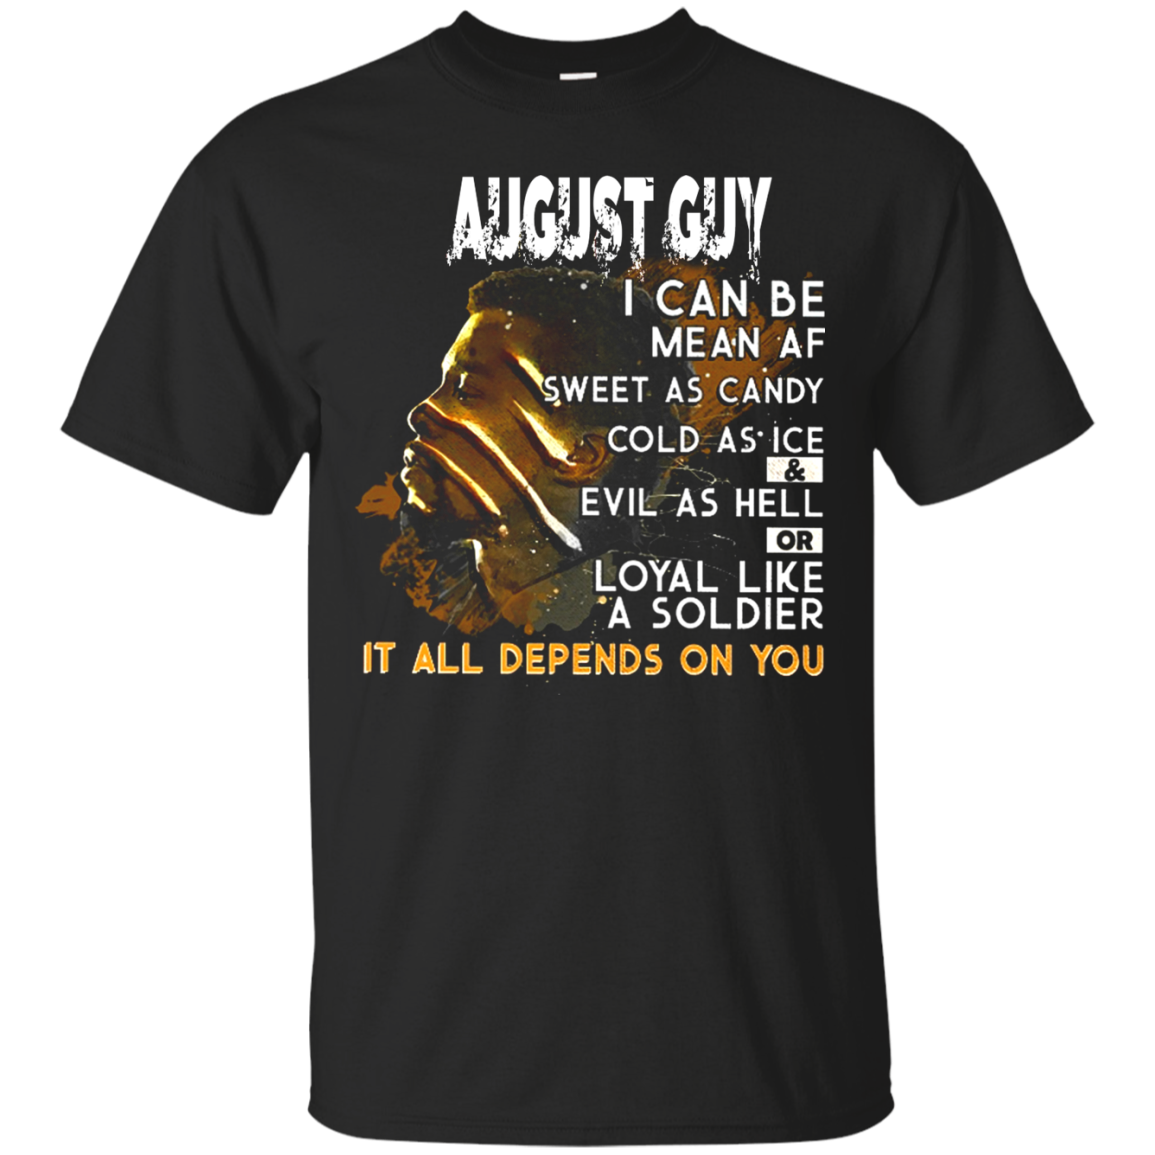 August Guy I Can Be Mean Af Sweet As Candy Cold As Ice T shirt hoodie sweater Men